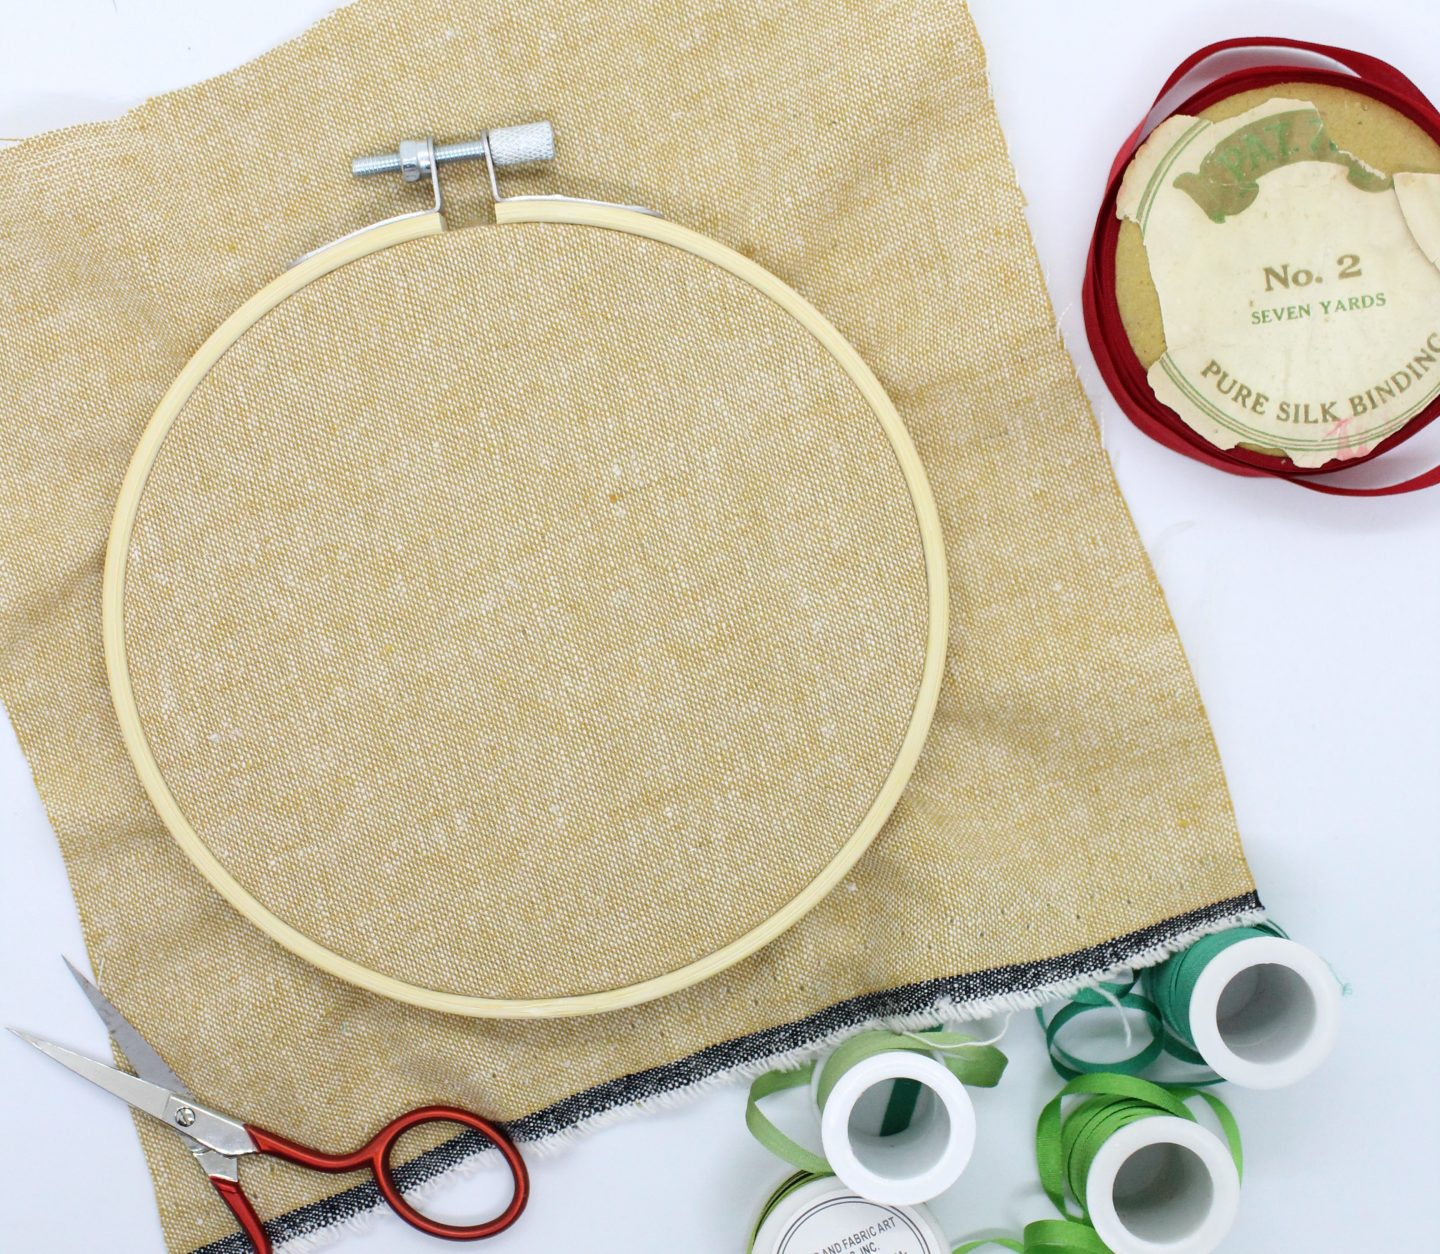 ribbon embroidery supplies